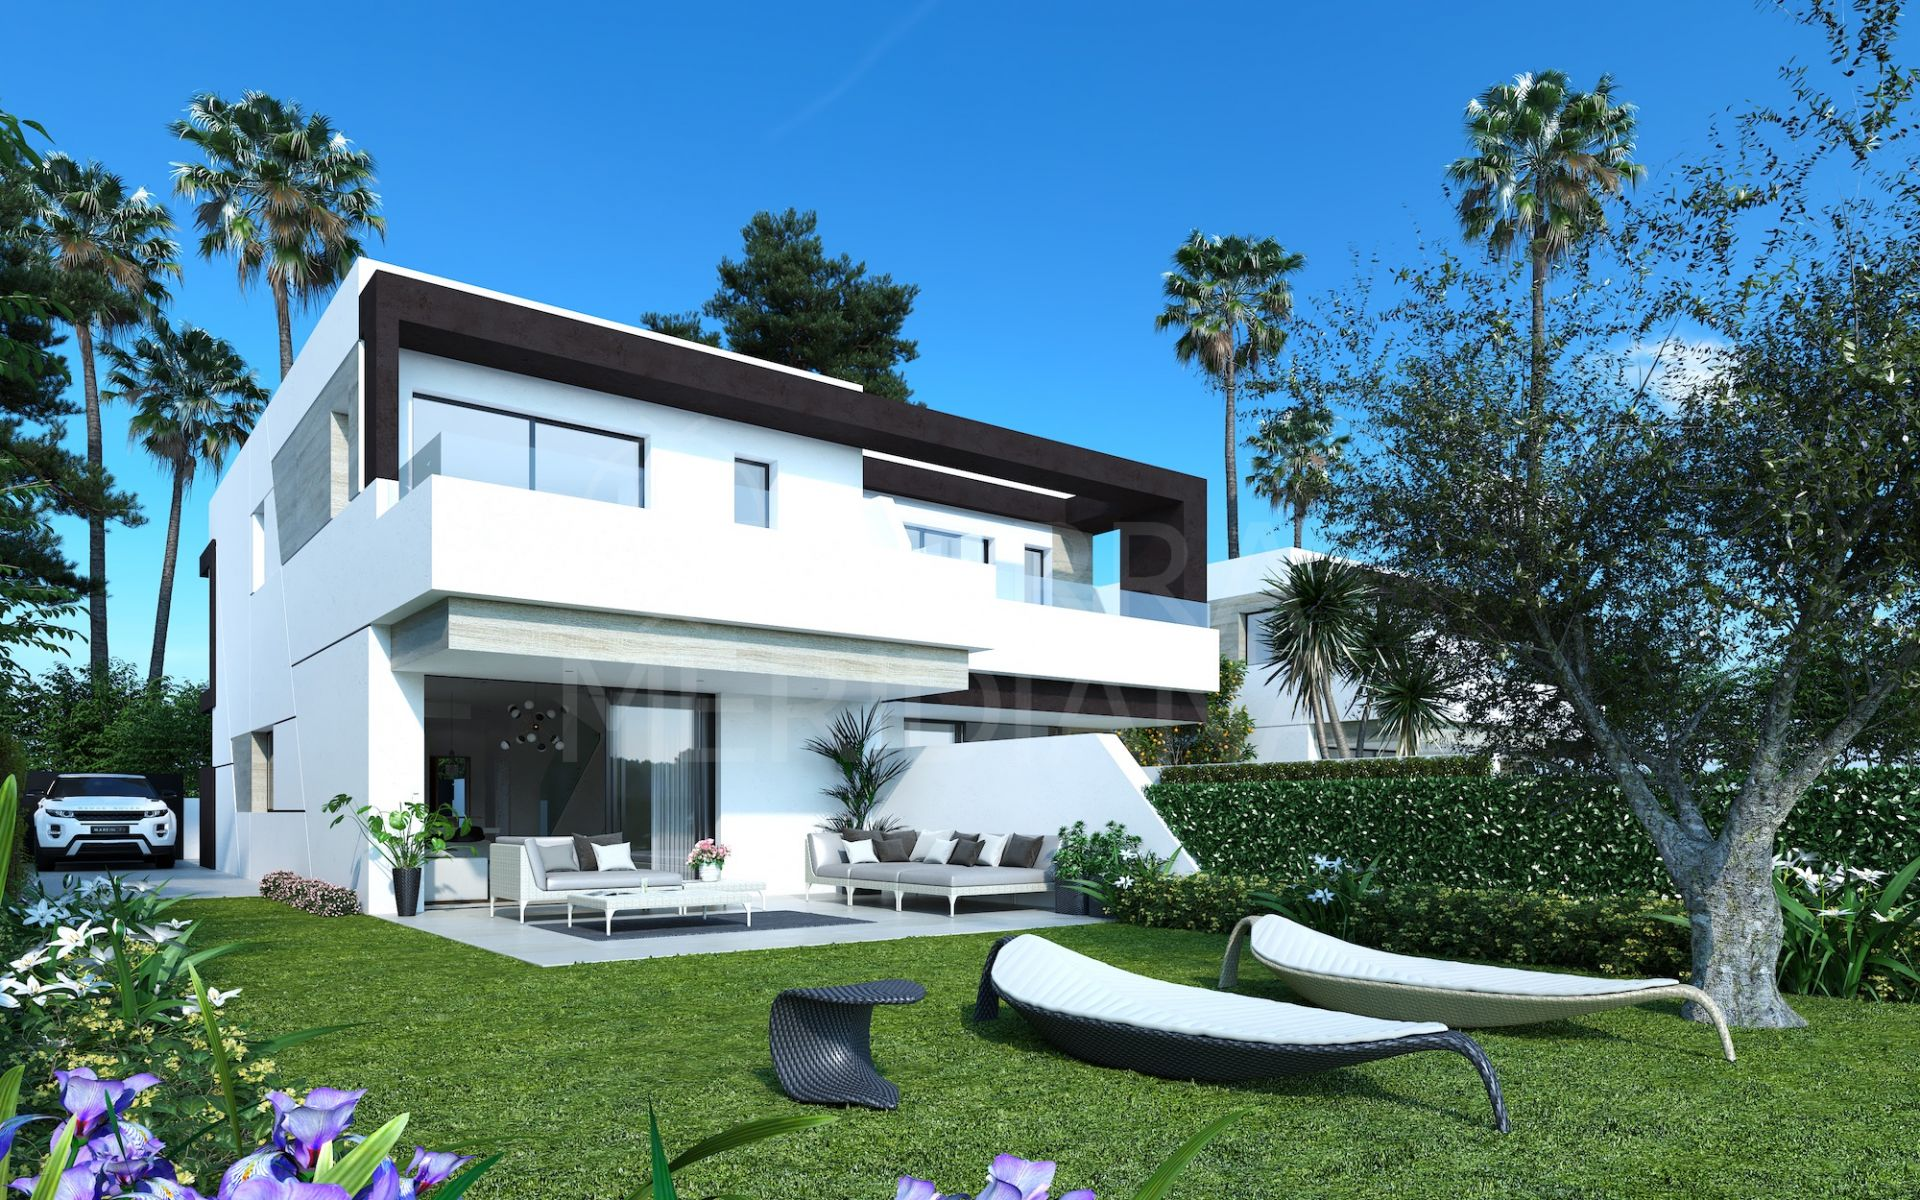 Off Plan Semi Detached Contemporary Style Villa In The Exclusive Boutique Development Of Oasis 22 La Resina Golf Estepona